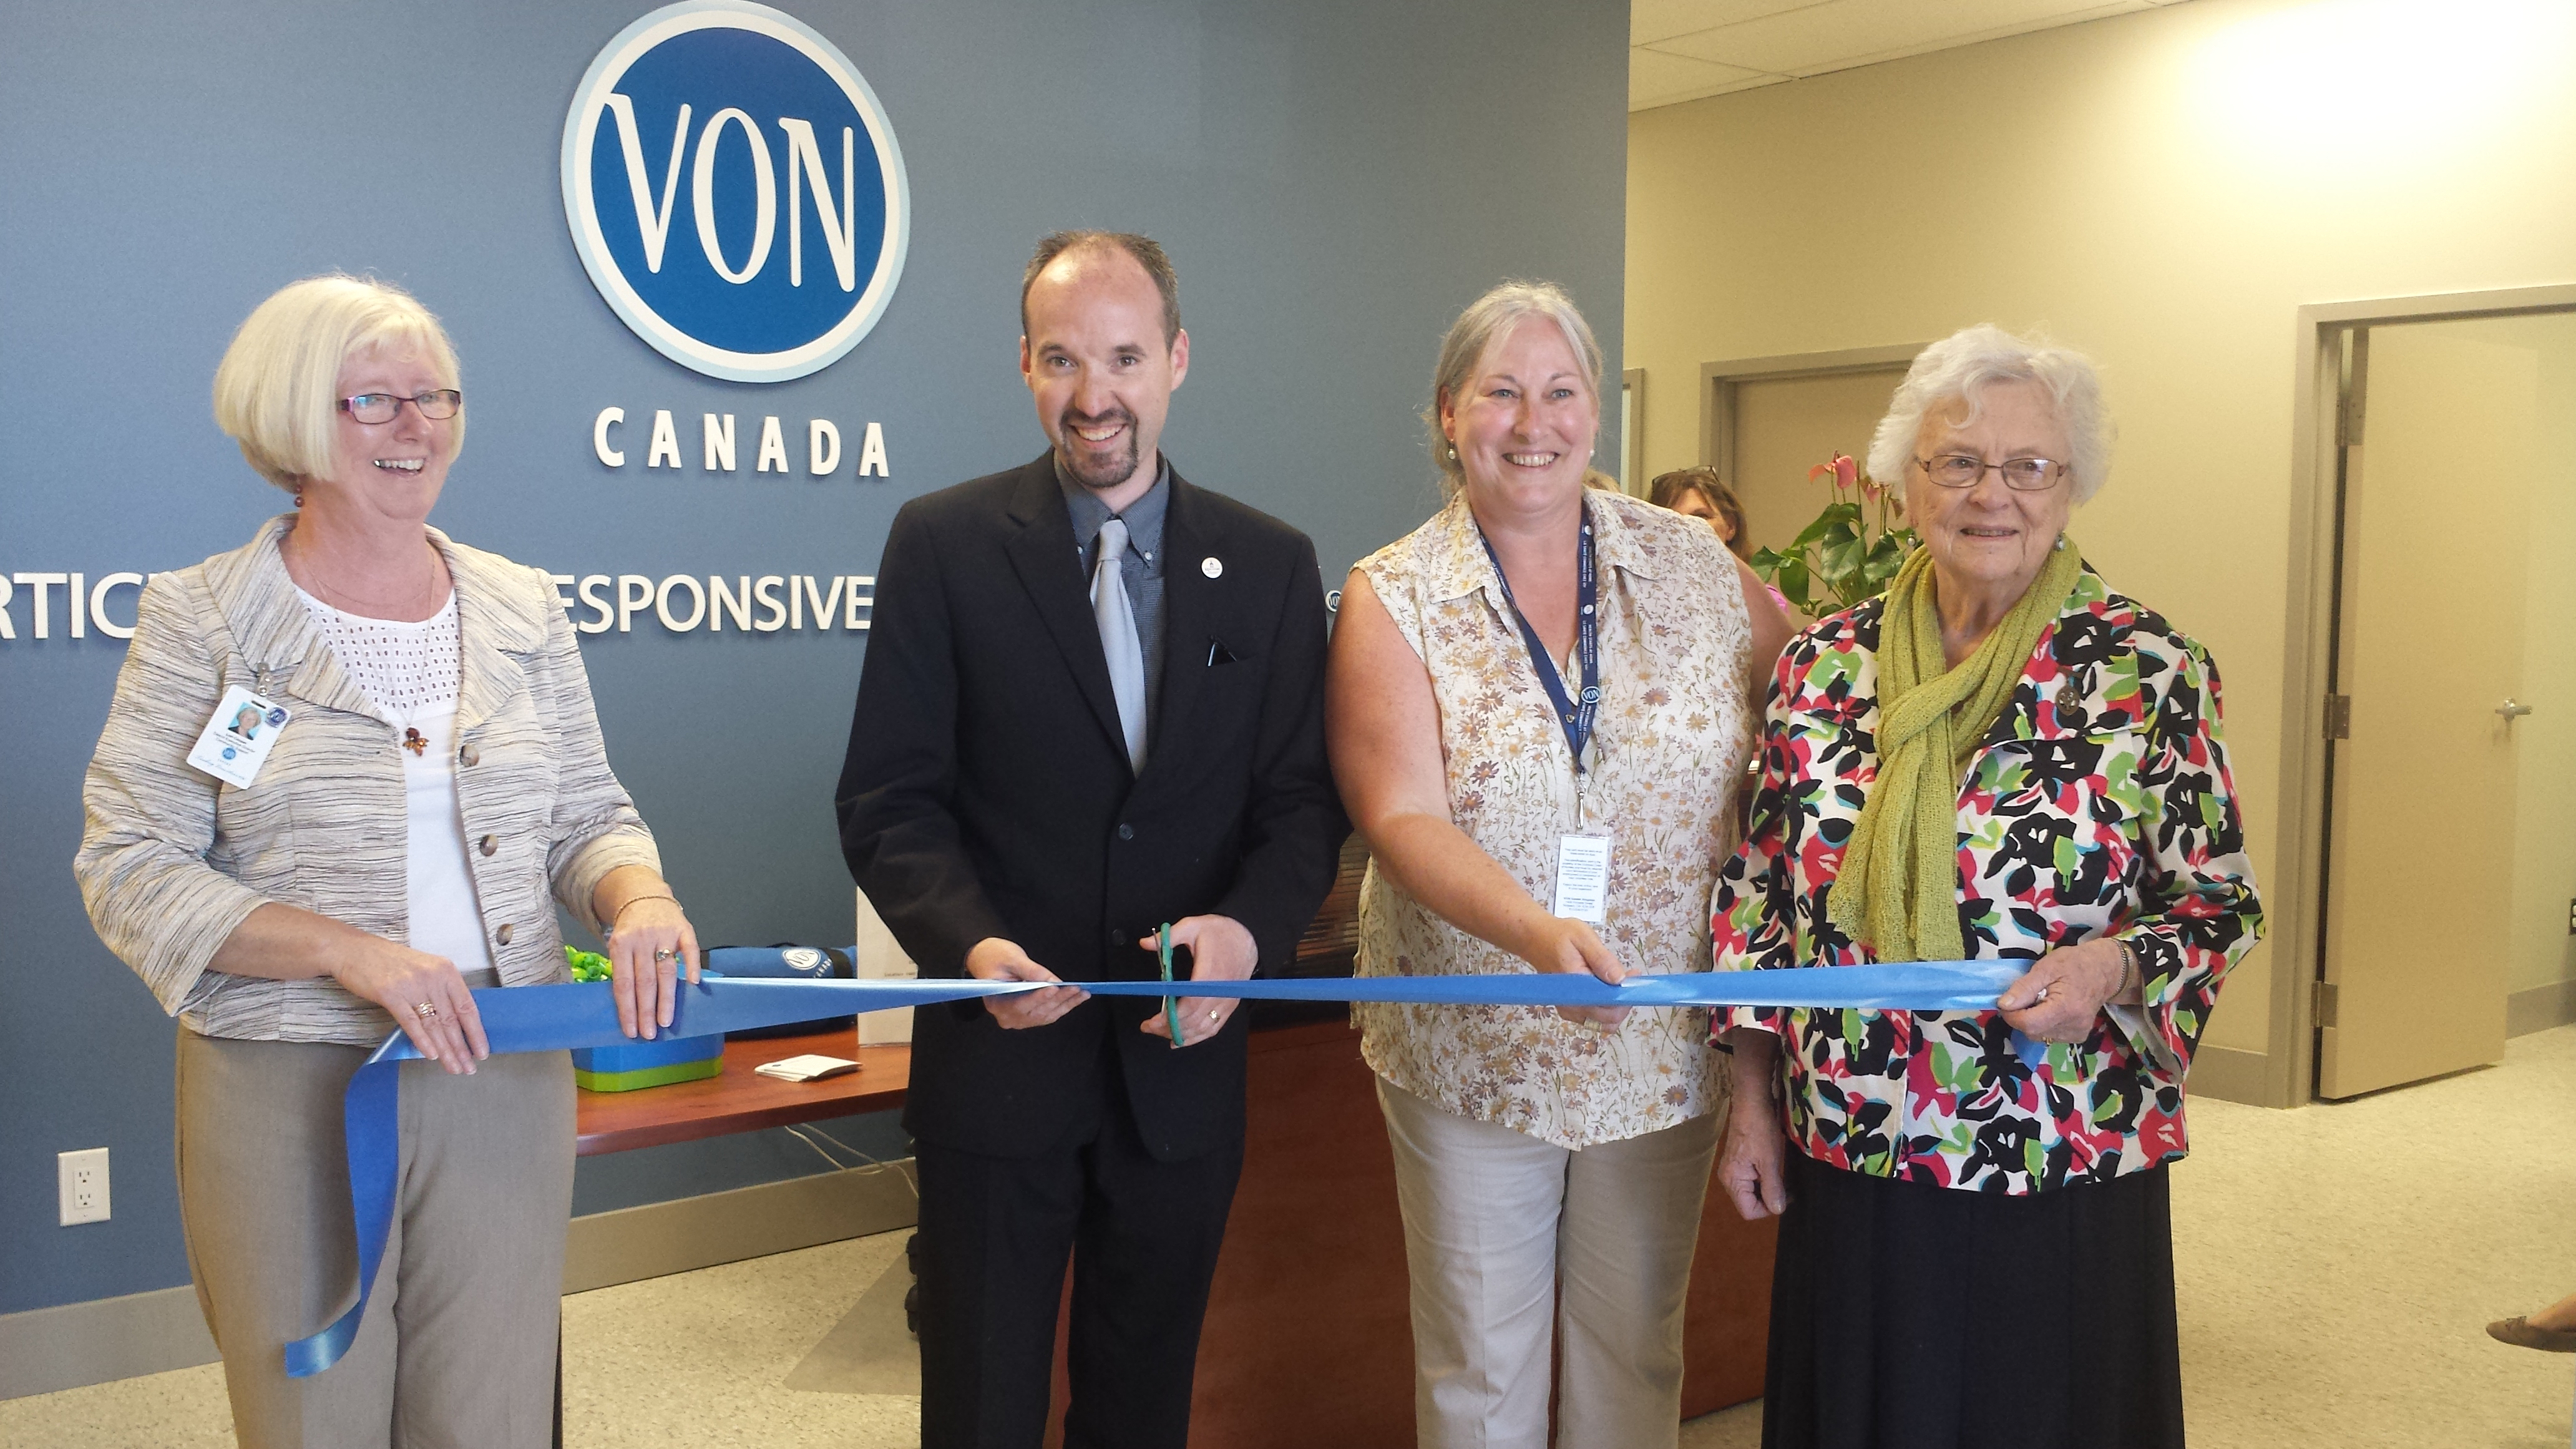 VON office opening - May 21 2015